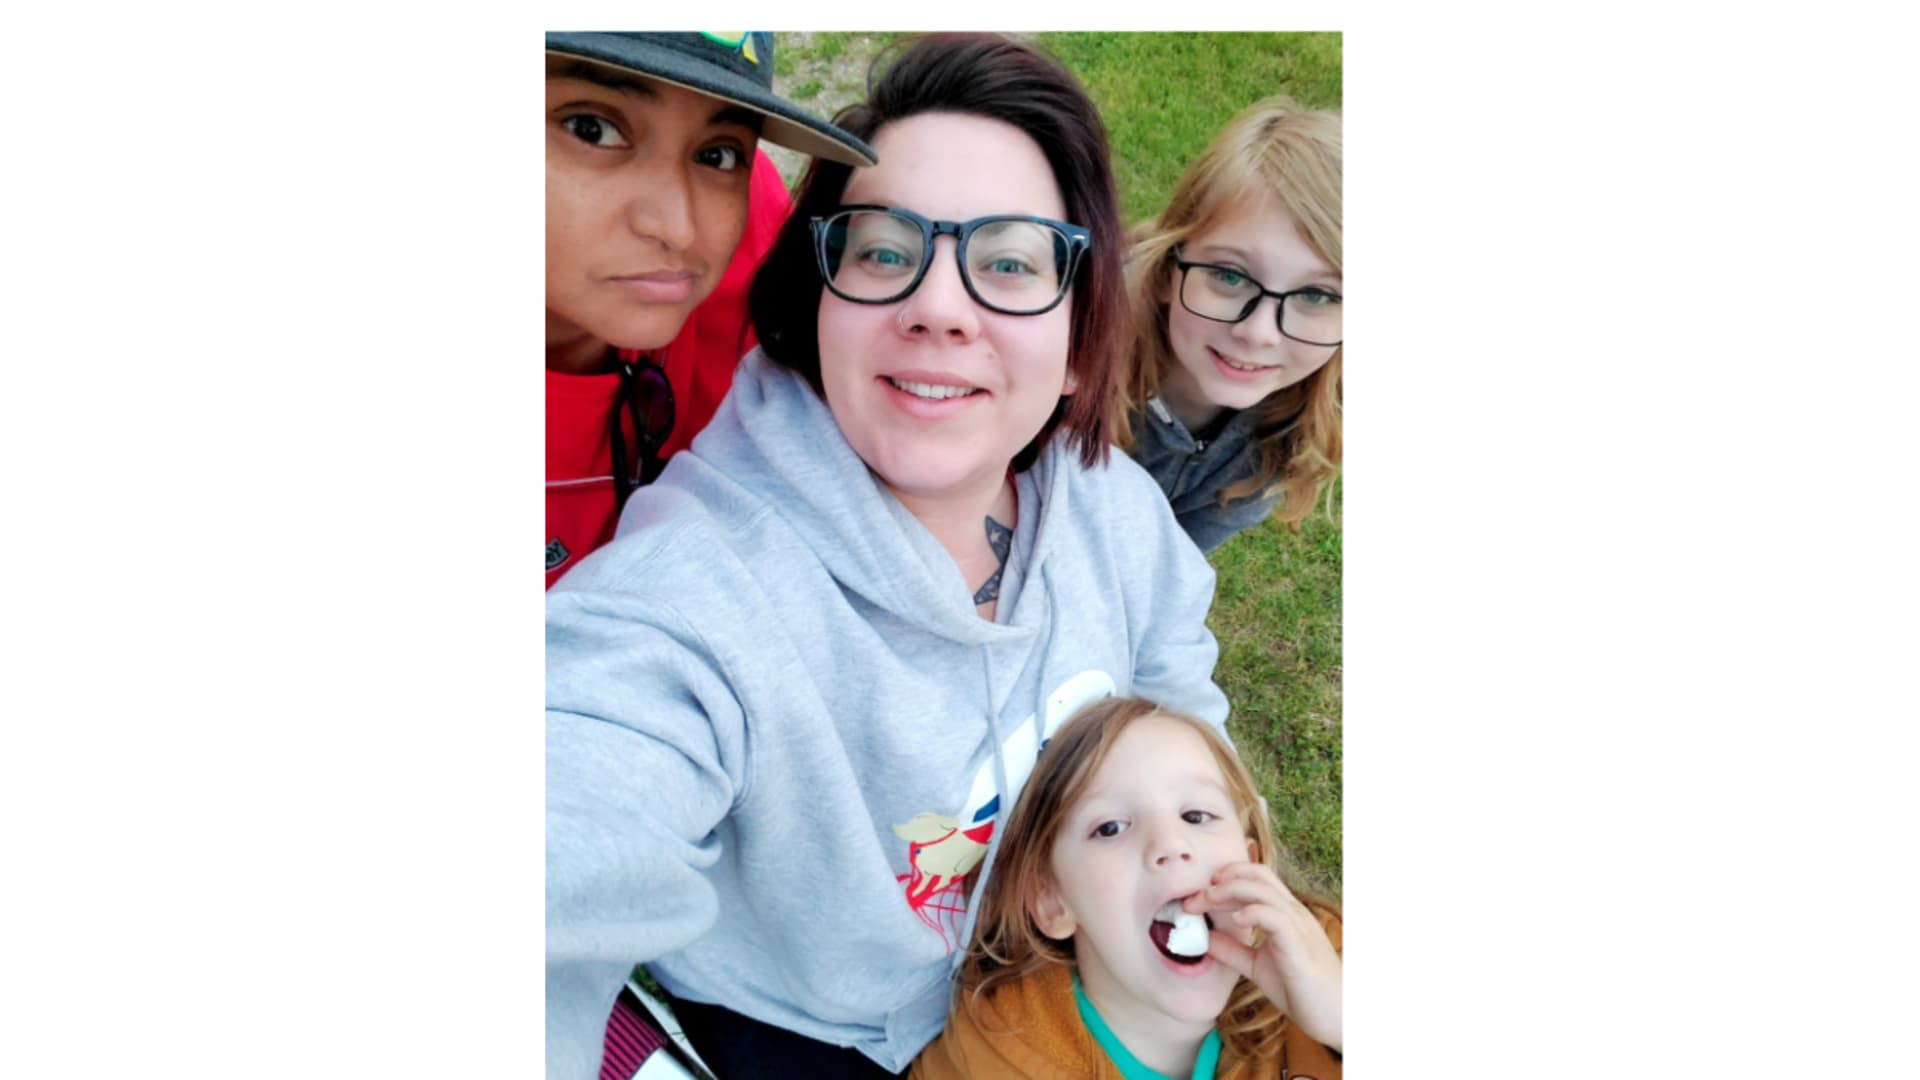 Shay Martinez-Machen and her wife America Martinez live in an RV with their two children.